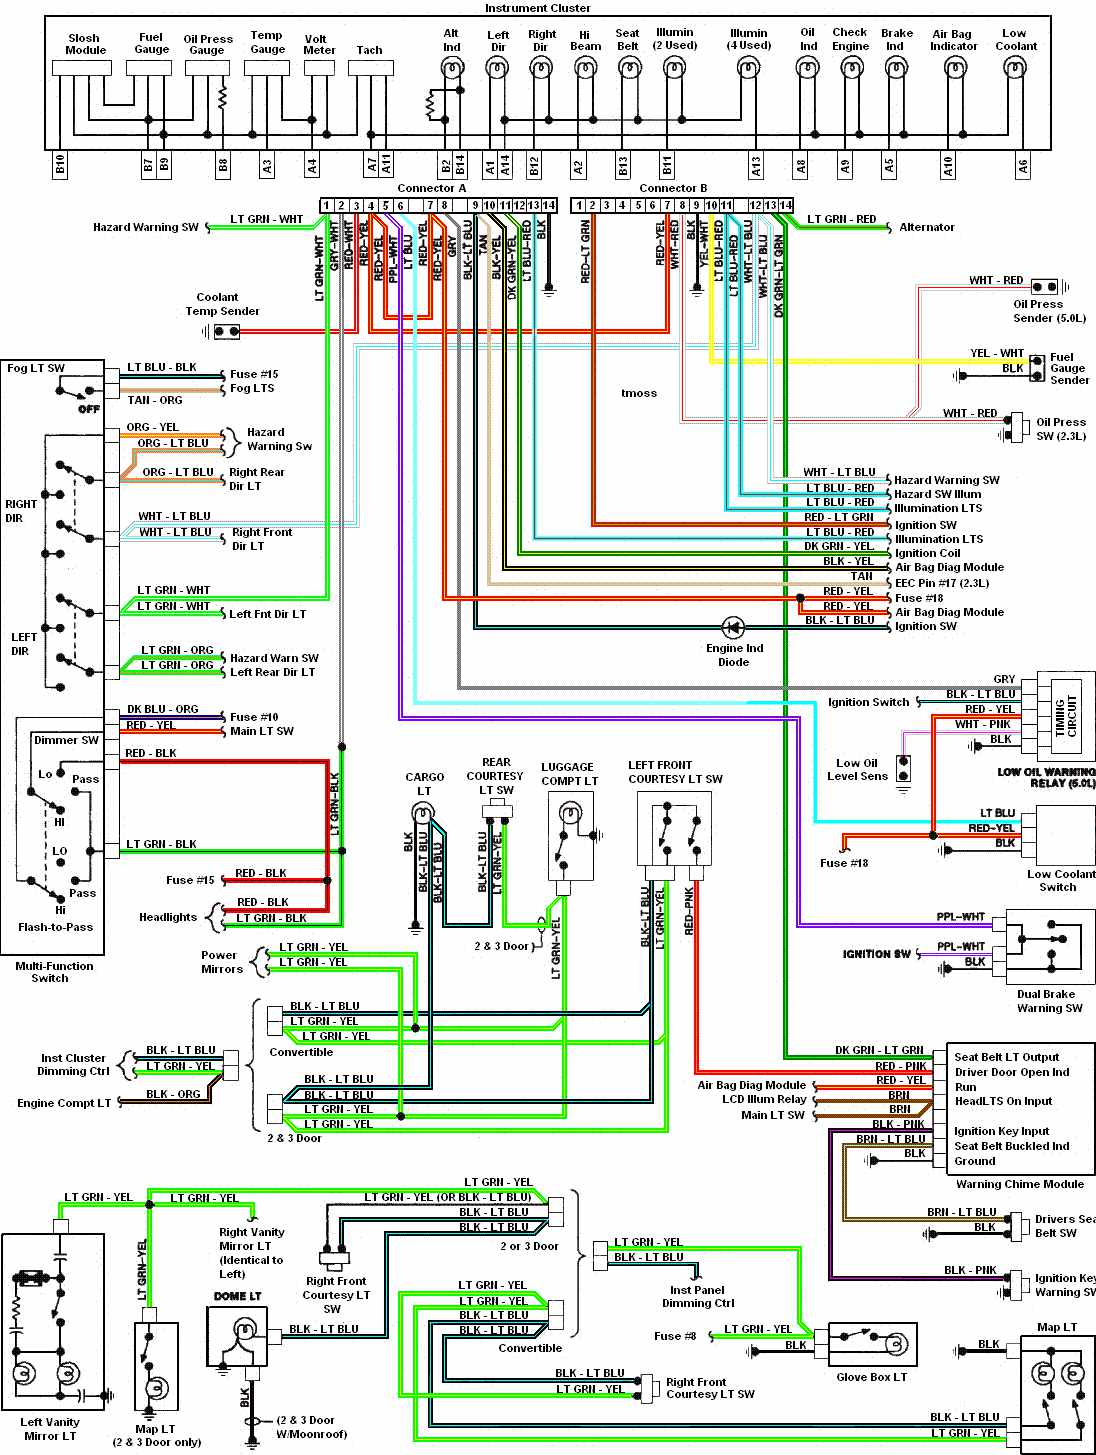 hight resolution of 2002 mustang wiring diagram wiring diagram inside 2002 mustang headlight wiring diagram 2002 mustang wiring diagram